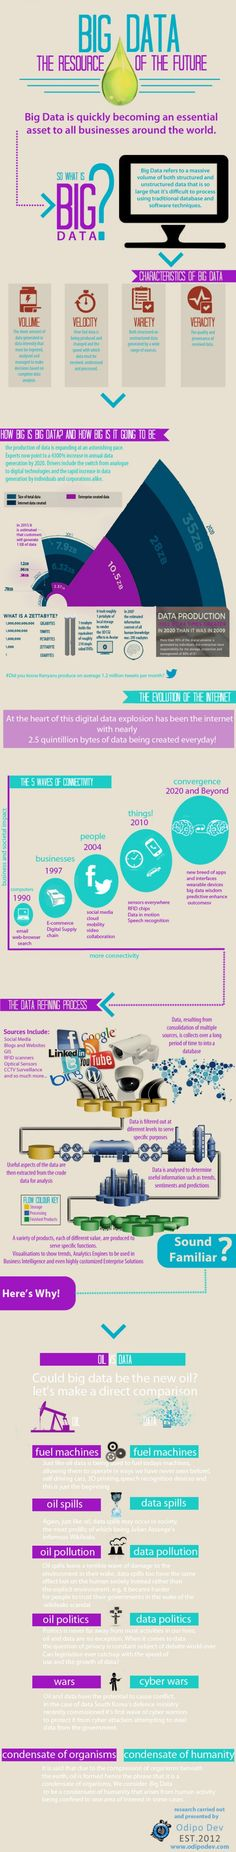 Big Data: The Resource Of The Future - #Infographic